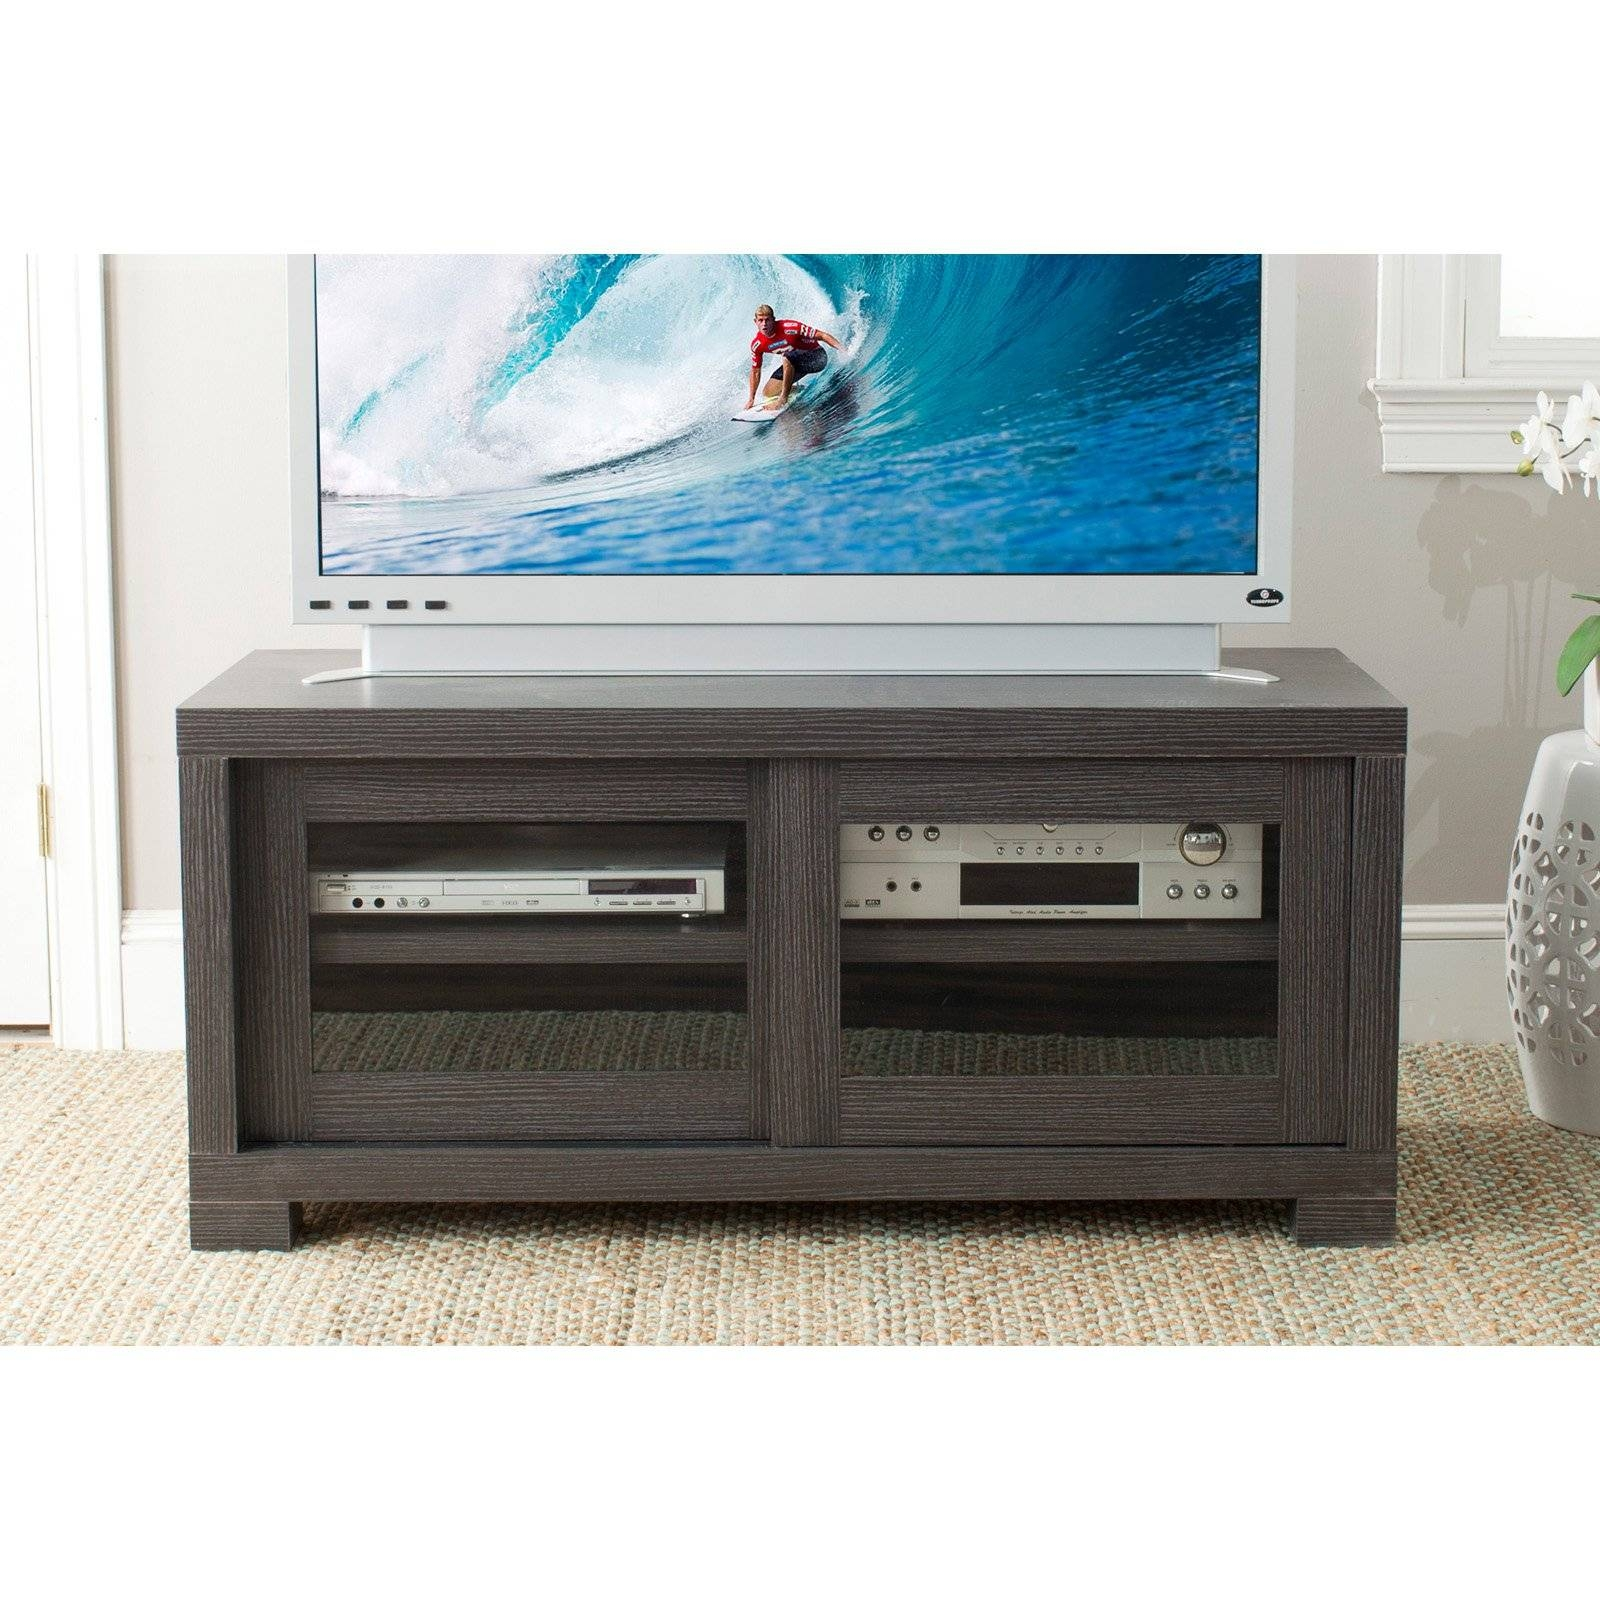 Modern Black Walnut Wood Tv Cabinet With Sliding Glass Doors Of in Wooden Tv Cabinets With Glass Doors (Image 10 of 15)